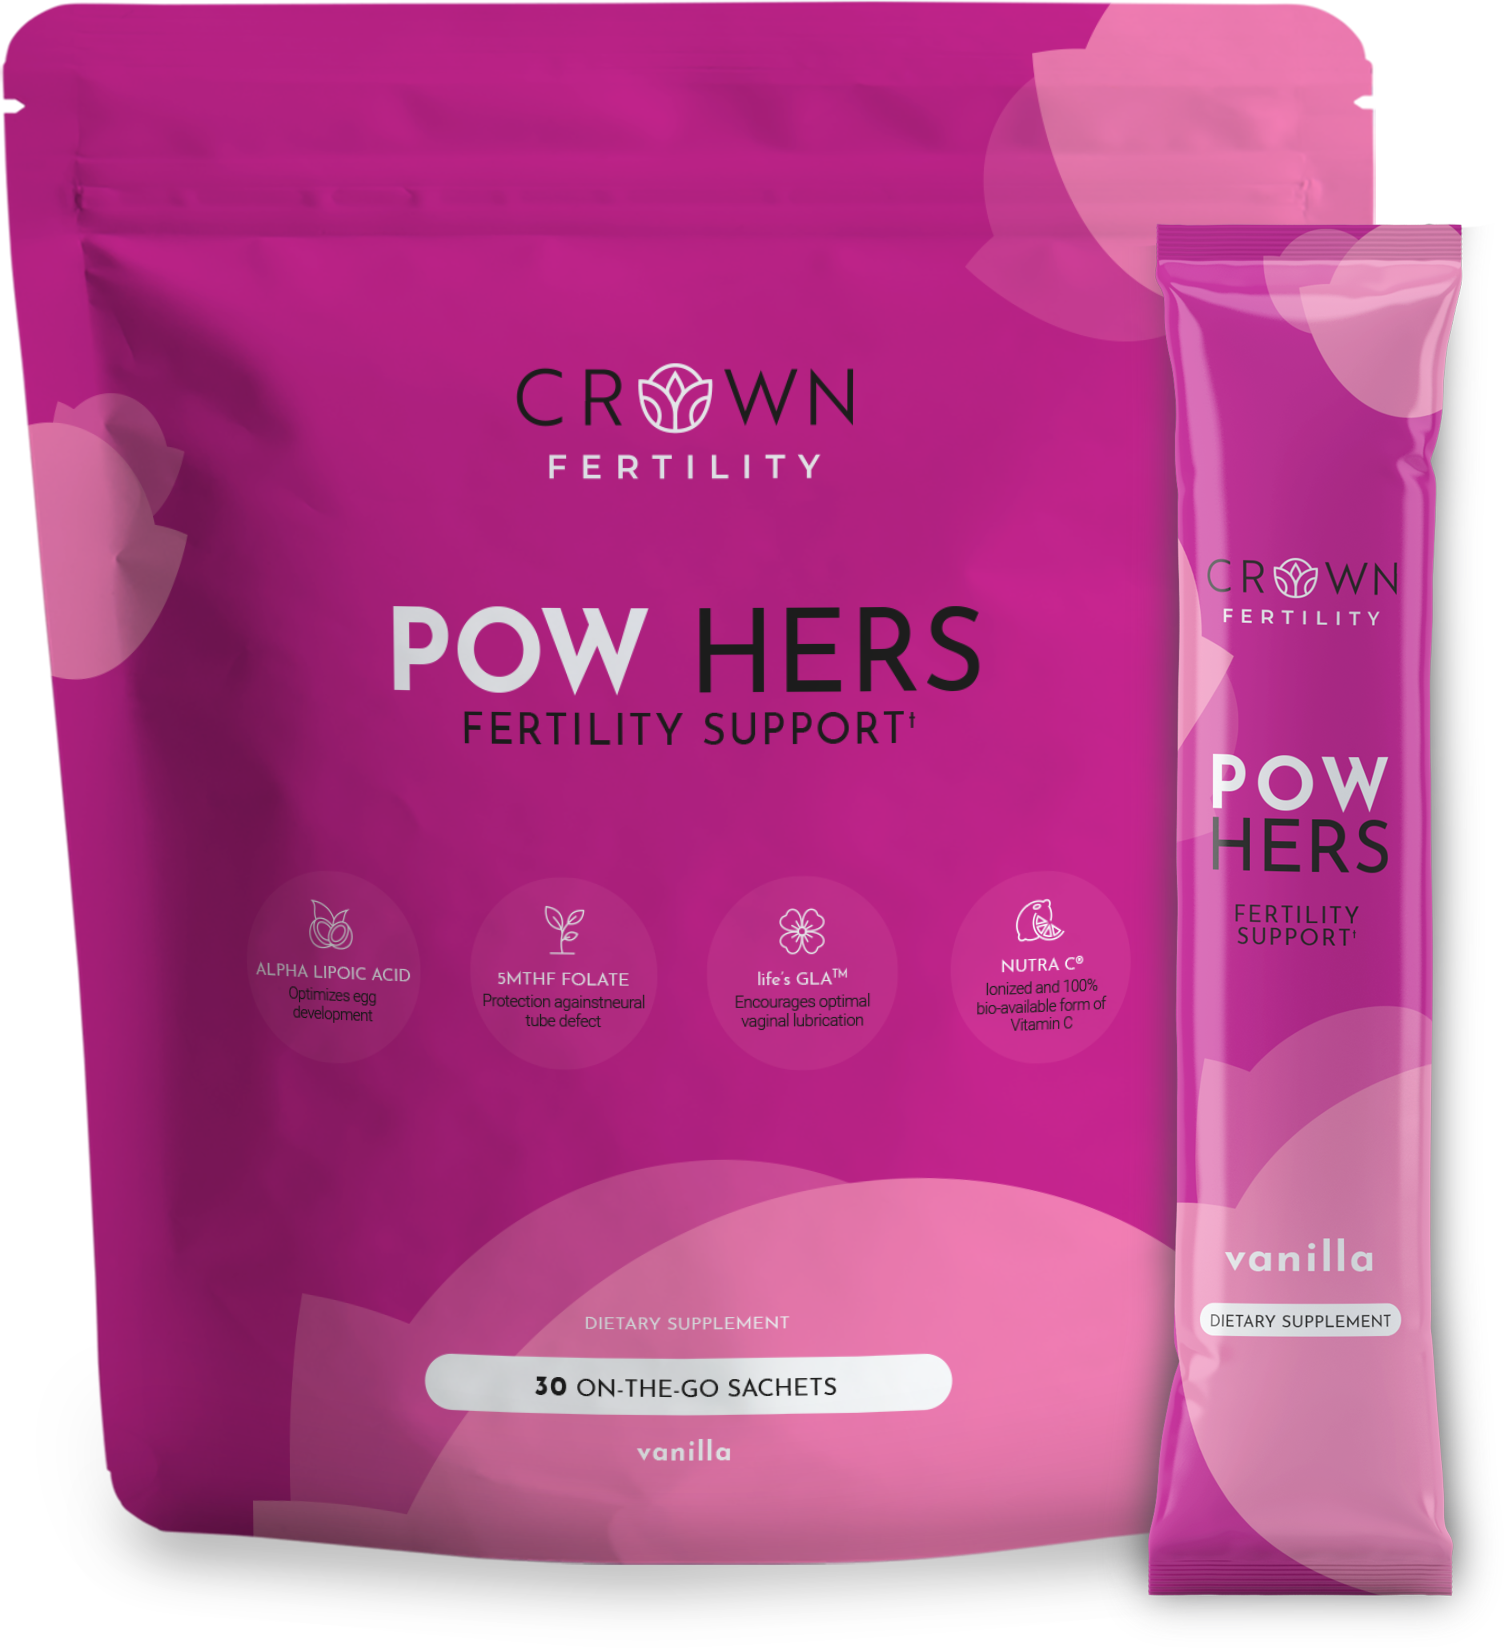 CrownFertility_Packaging_Hers_all